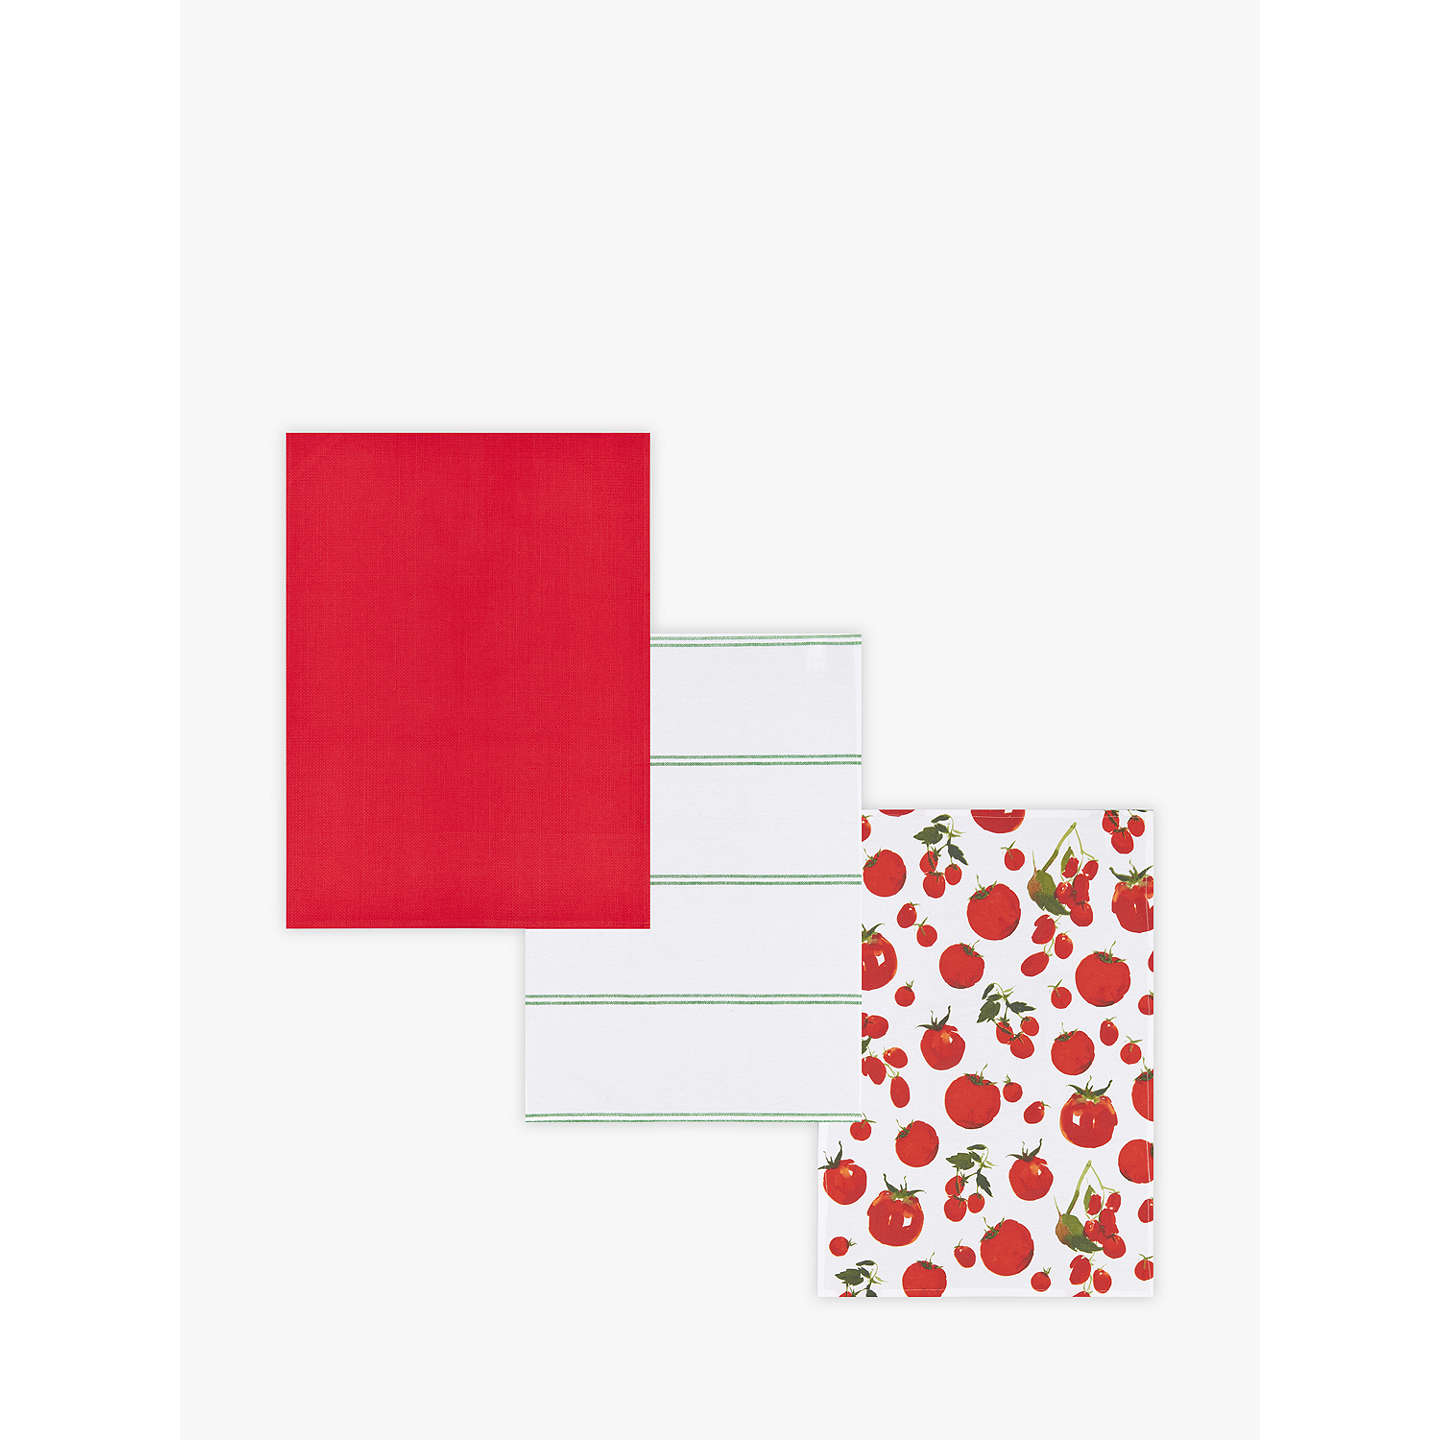 BuyJohn Lewis Tomato Tea Towels, Assorted, Pack of 3 Online at johnlewis.com